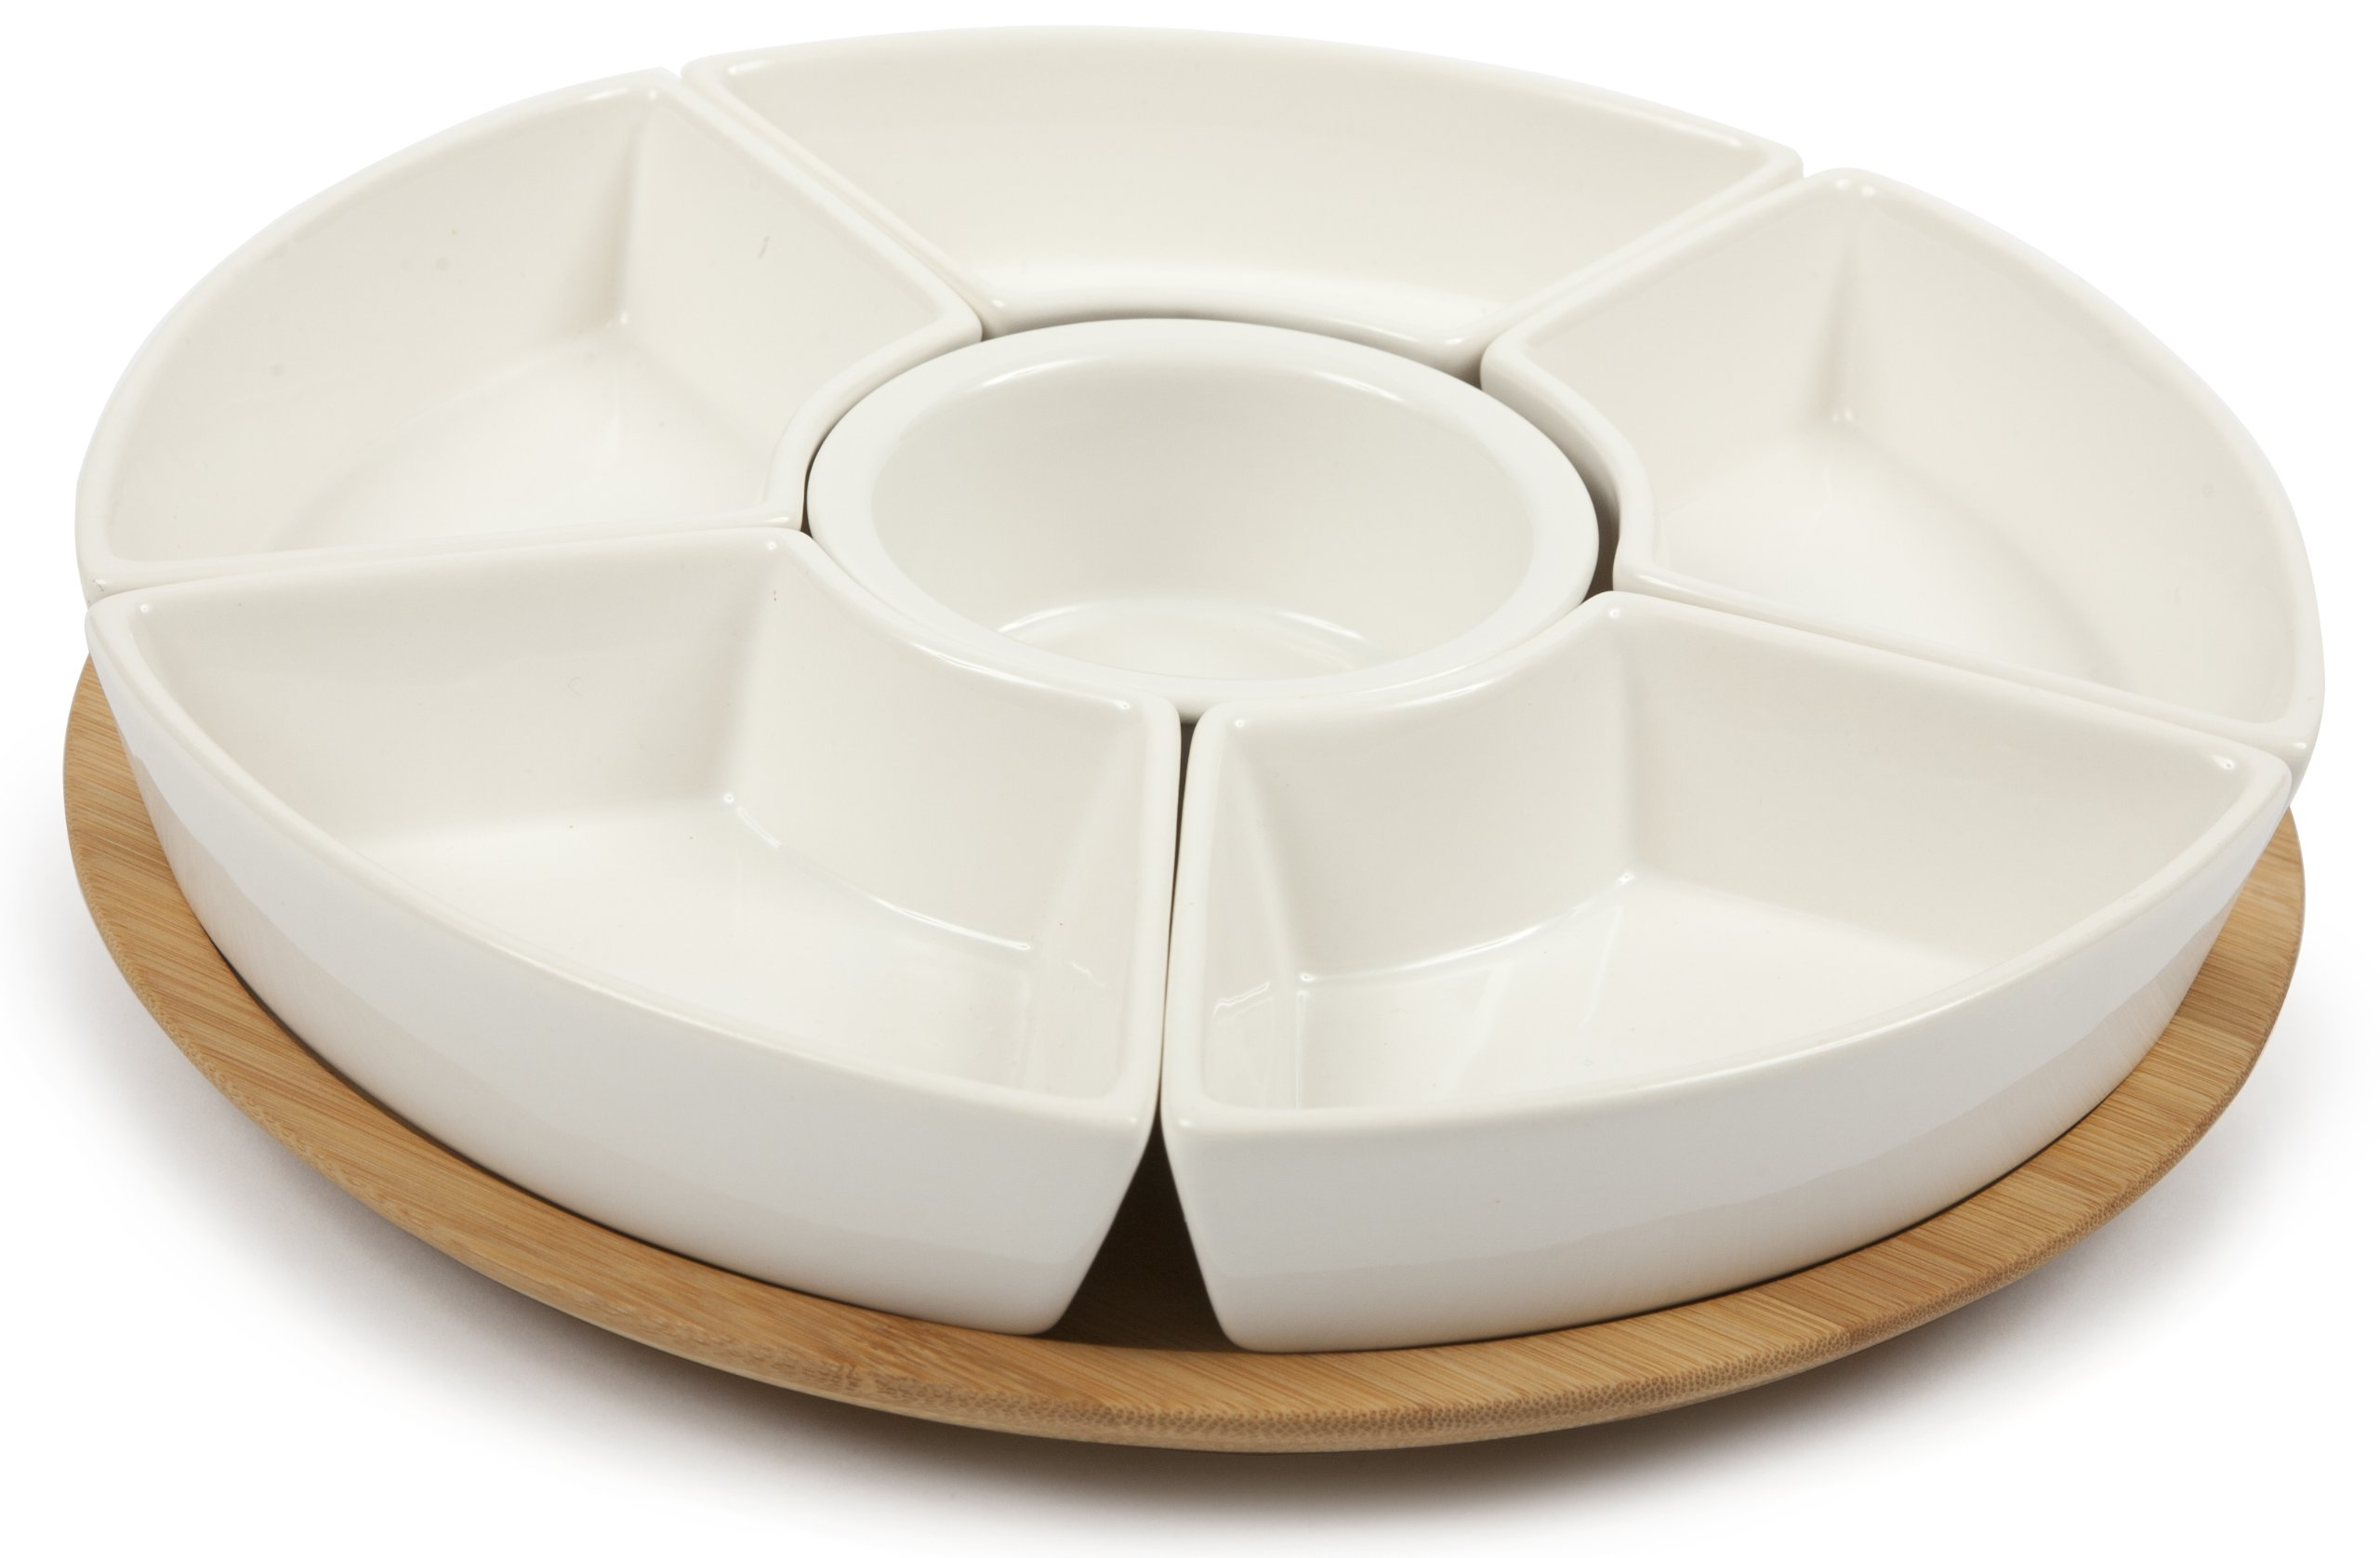 Core Bamboo Perfectly Rounded 5-Part Entertainment Set, Natural/White